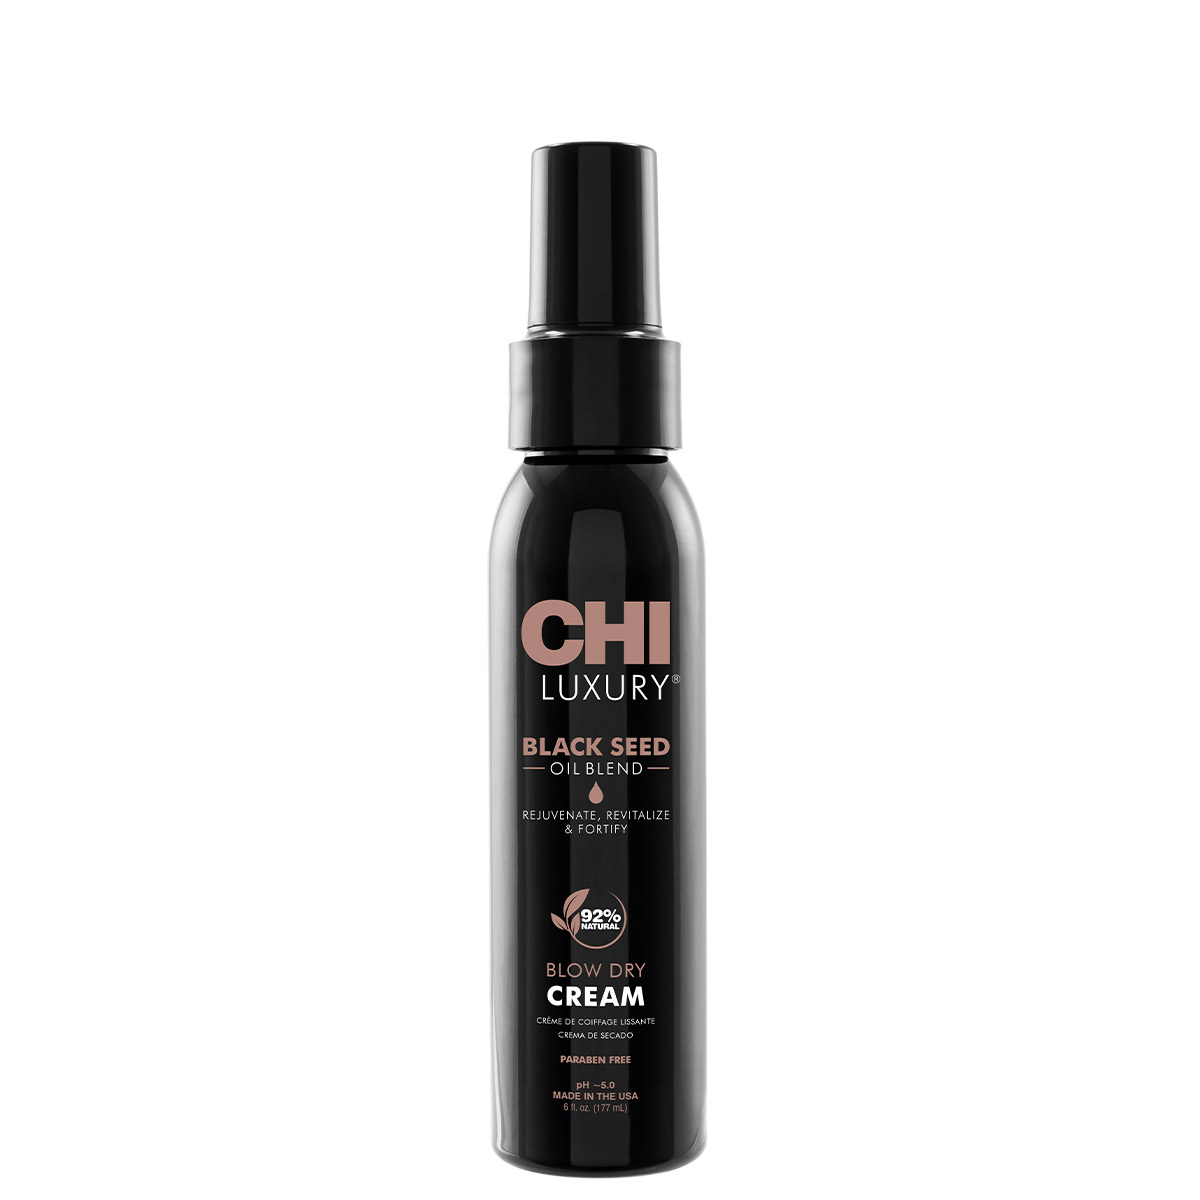 CHI Luxury Black Seed Oil Blend Blow Dry Cream CHI Haircare